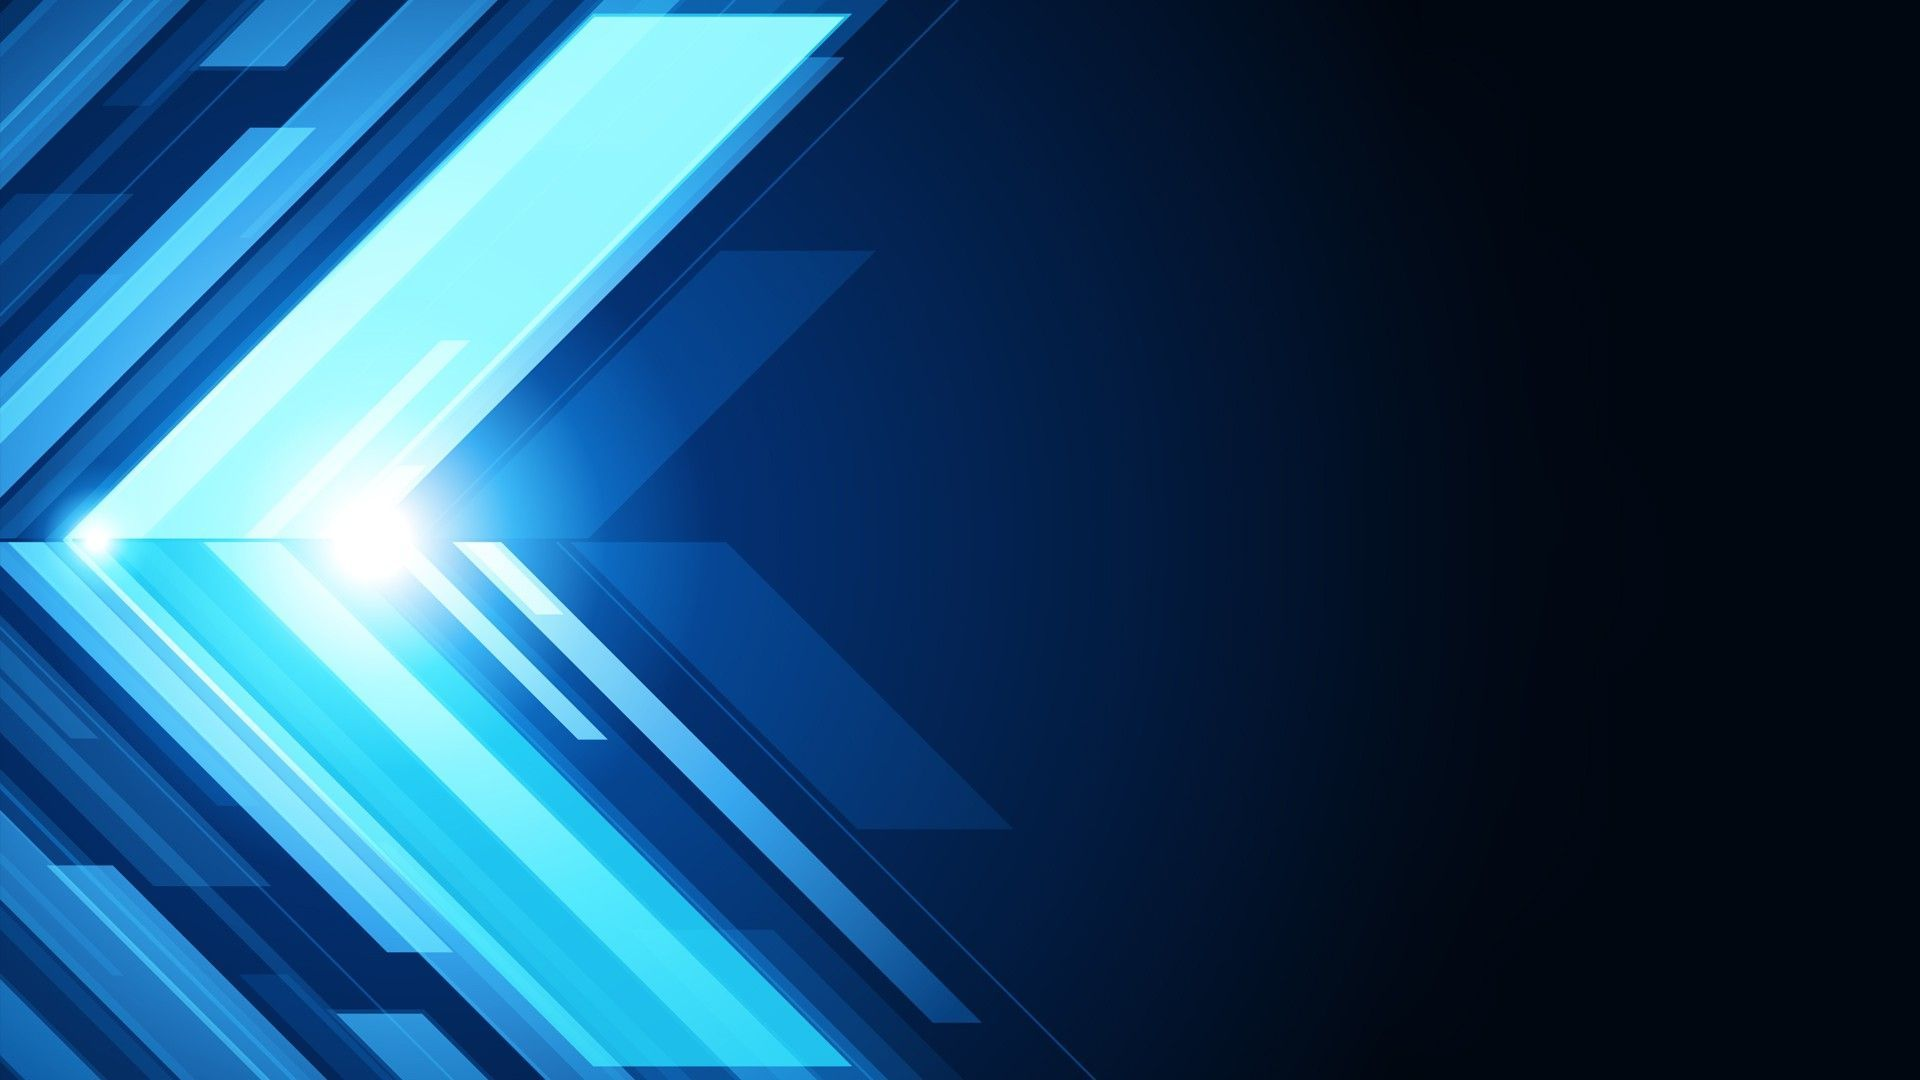 Blue Abstract Arrow HD Wallpapers 1920x1080